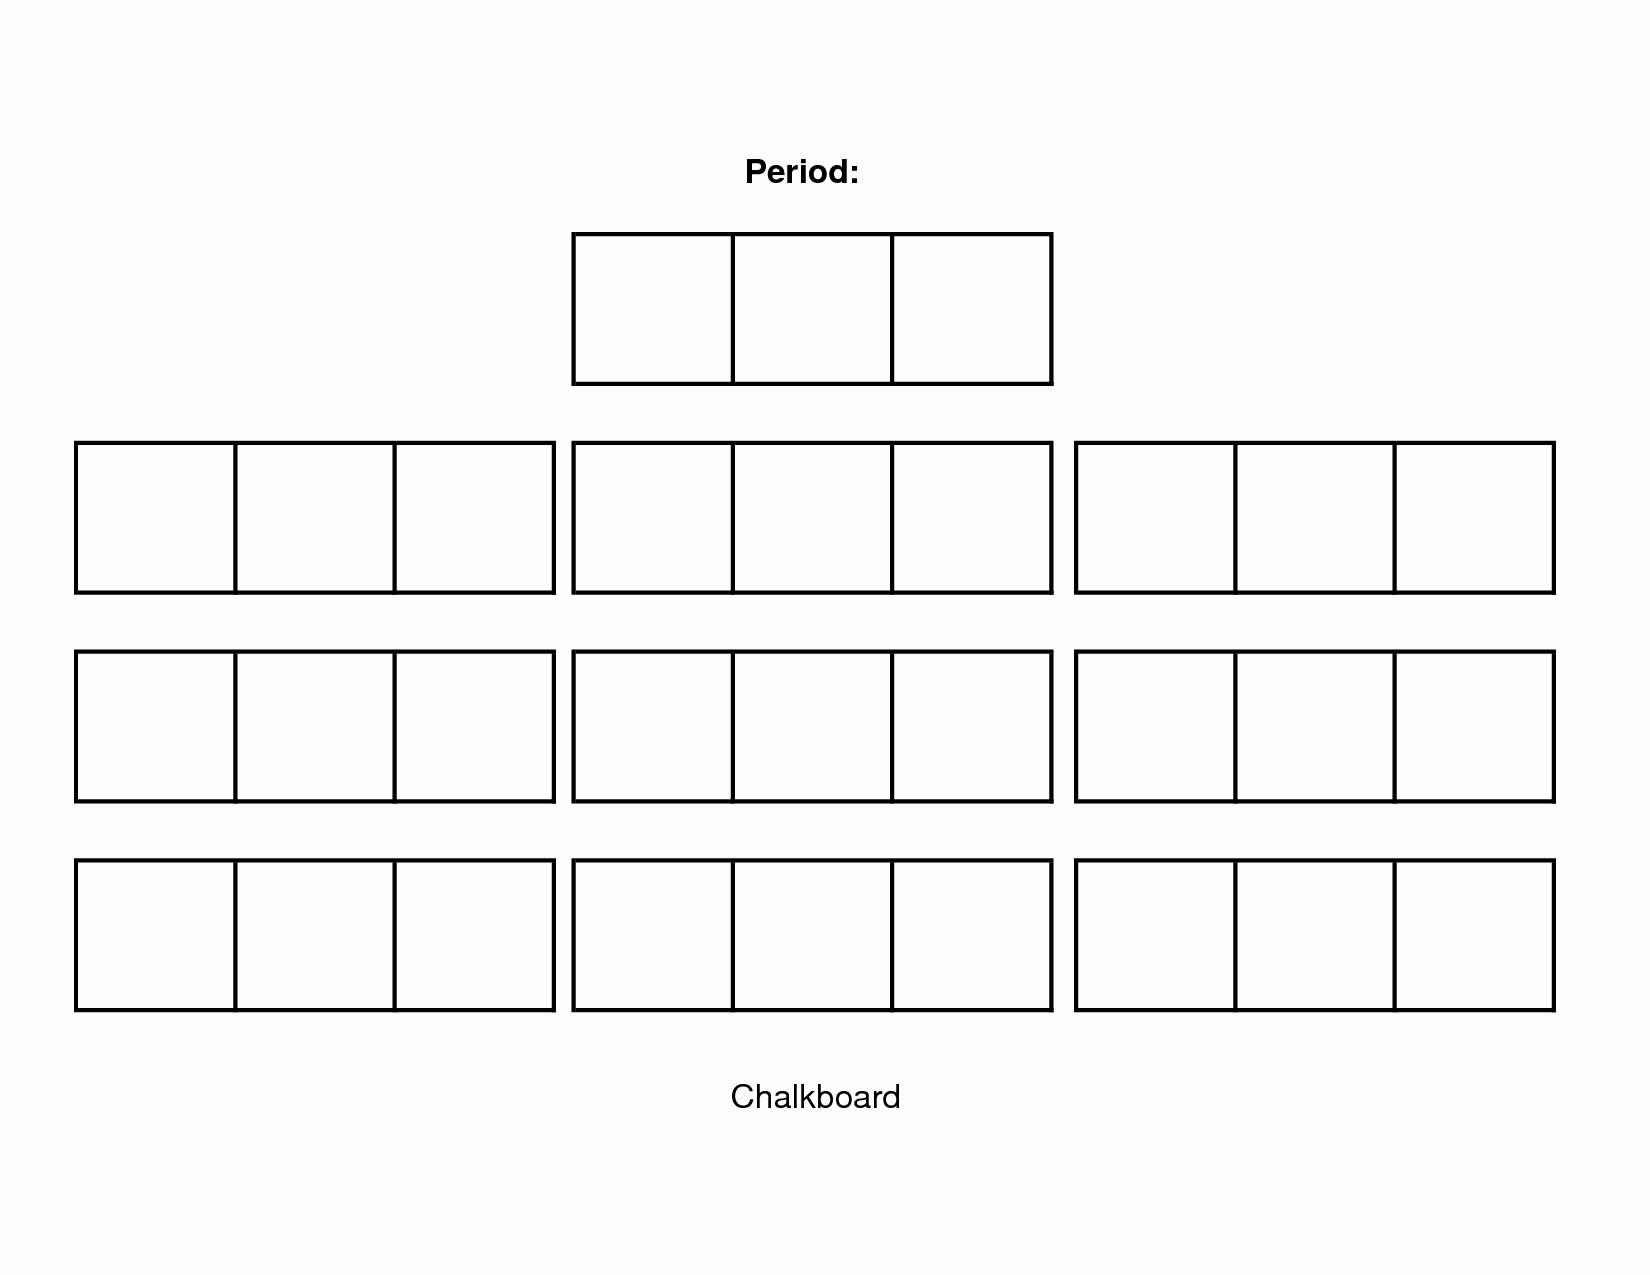 Table Seating Chart Template Microsoft Word Elegant How to Make A Chart In Word Free Business Template 6